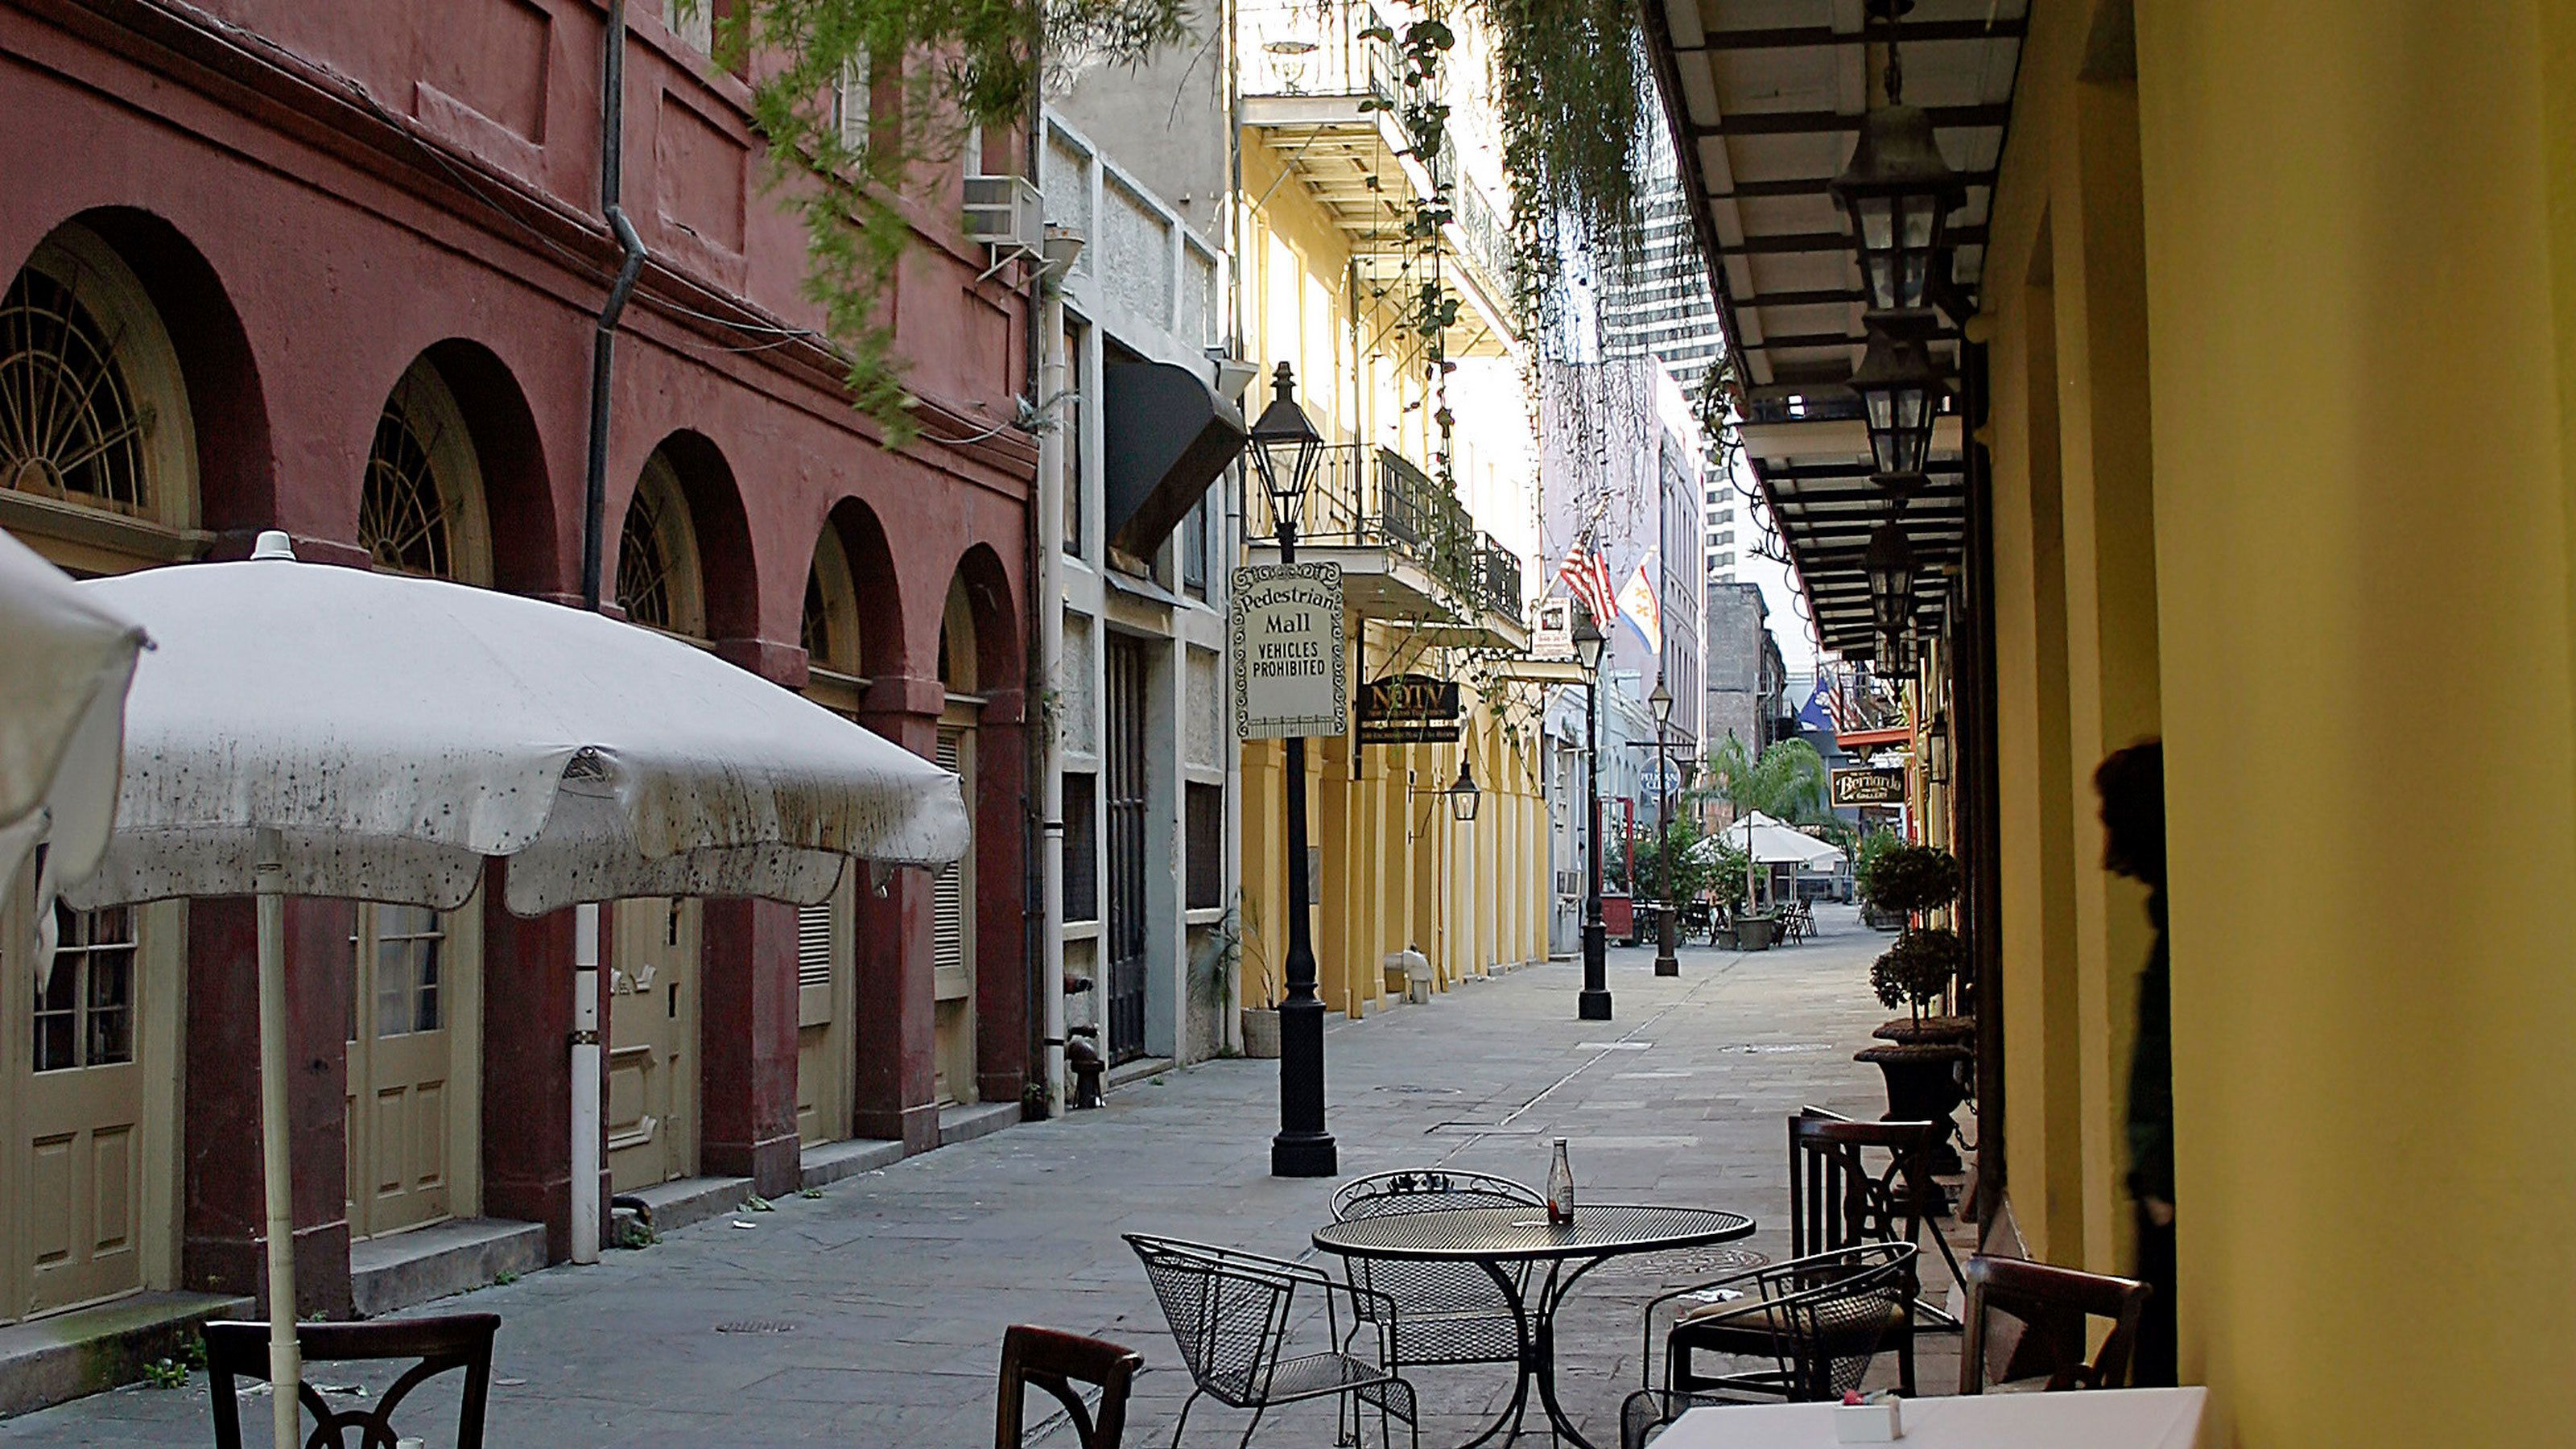 outdoor seating on sidewalk in french quarter in New Orleans